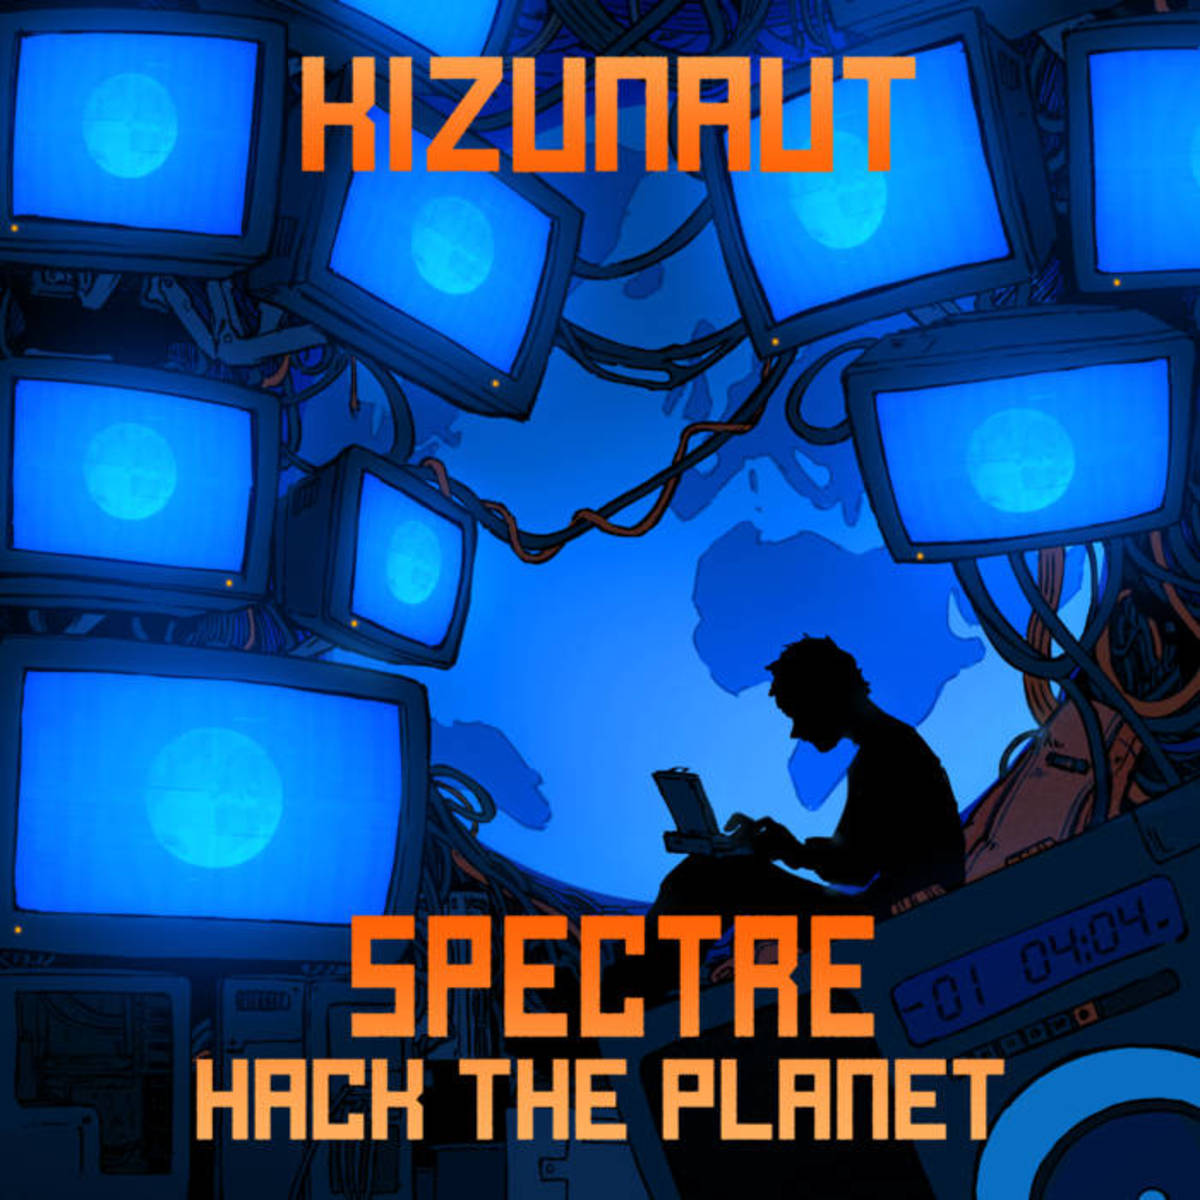 synth-ep-review-spectre-hack-the-planet-by-kizunaut-and-guests